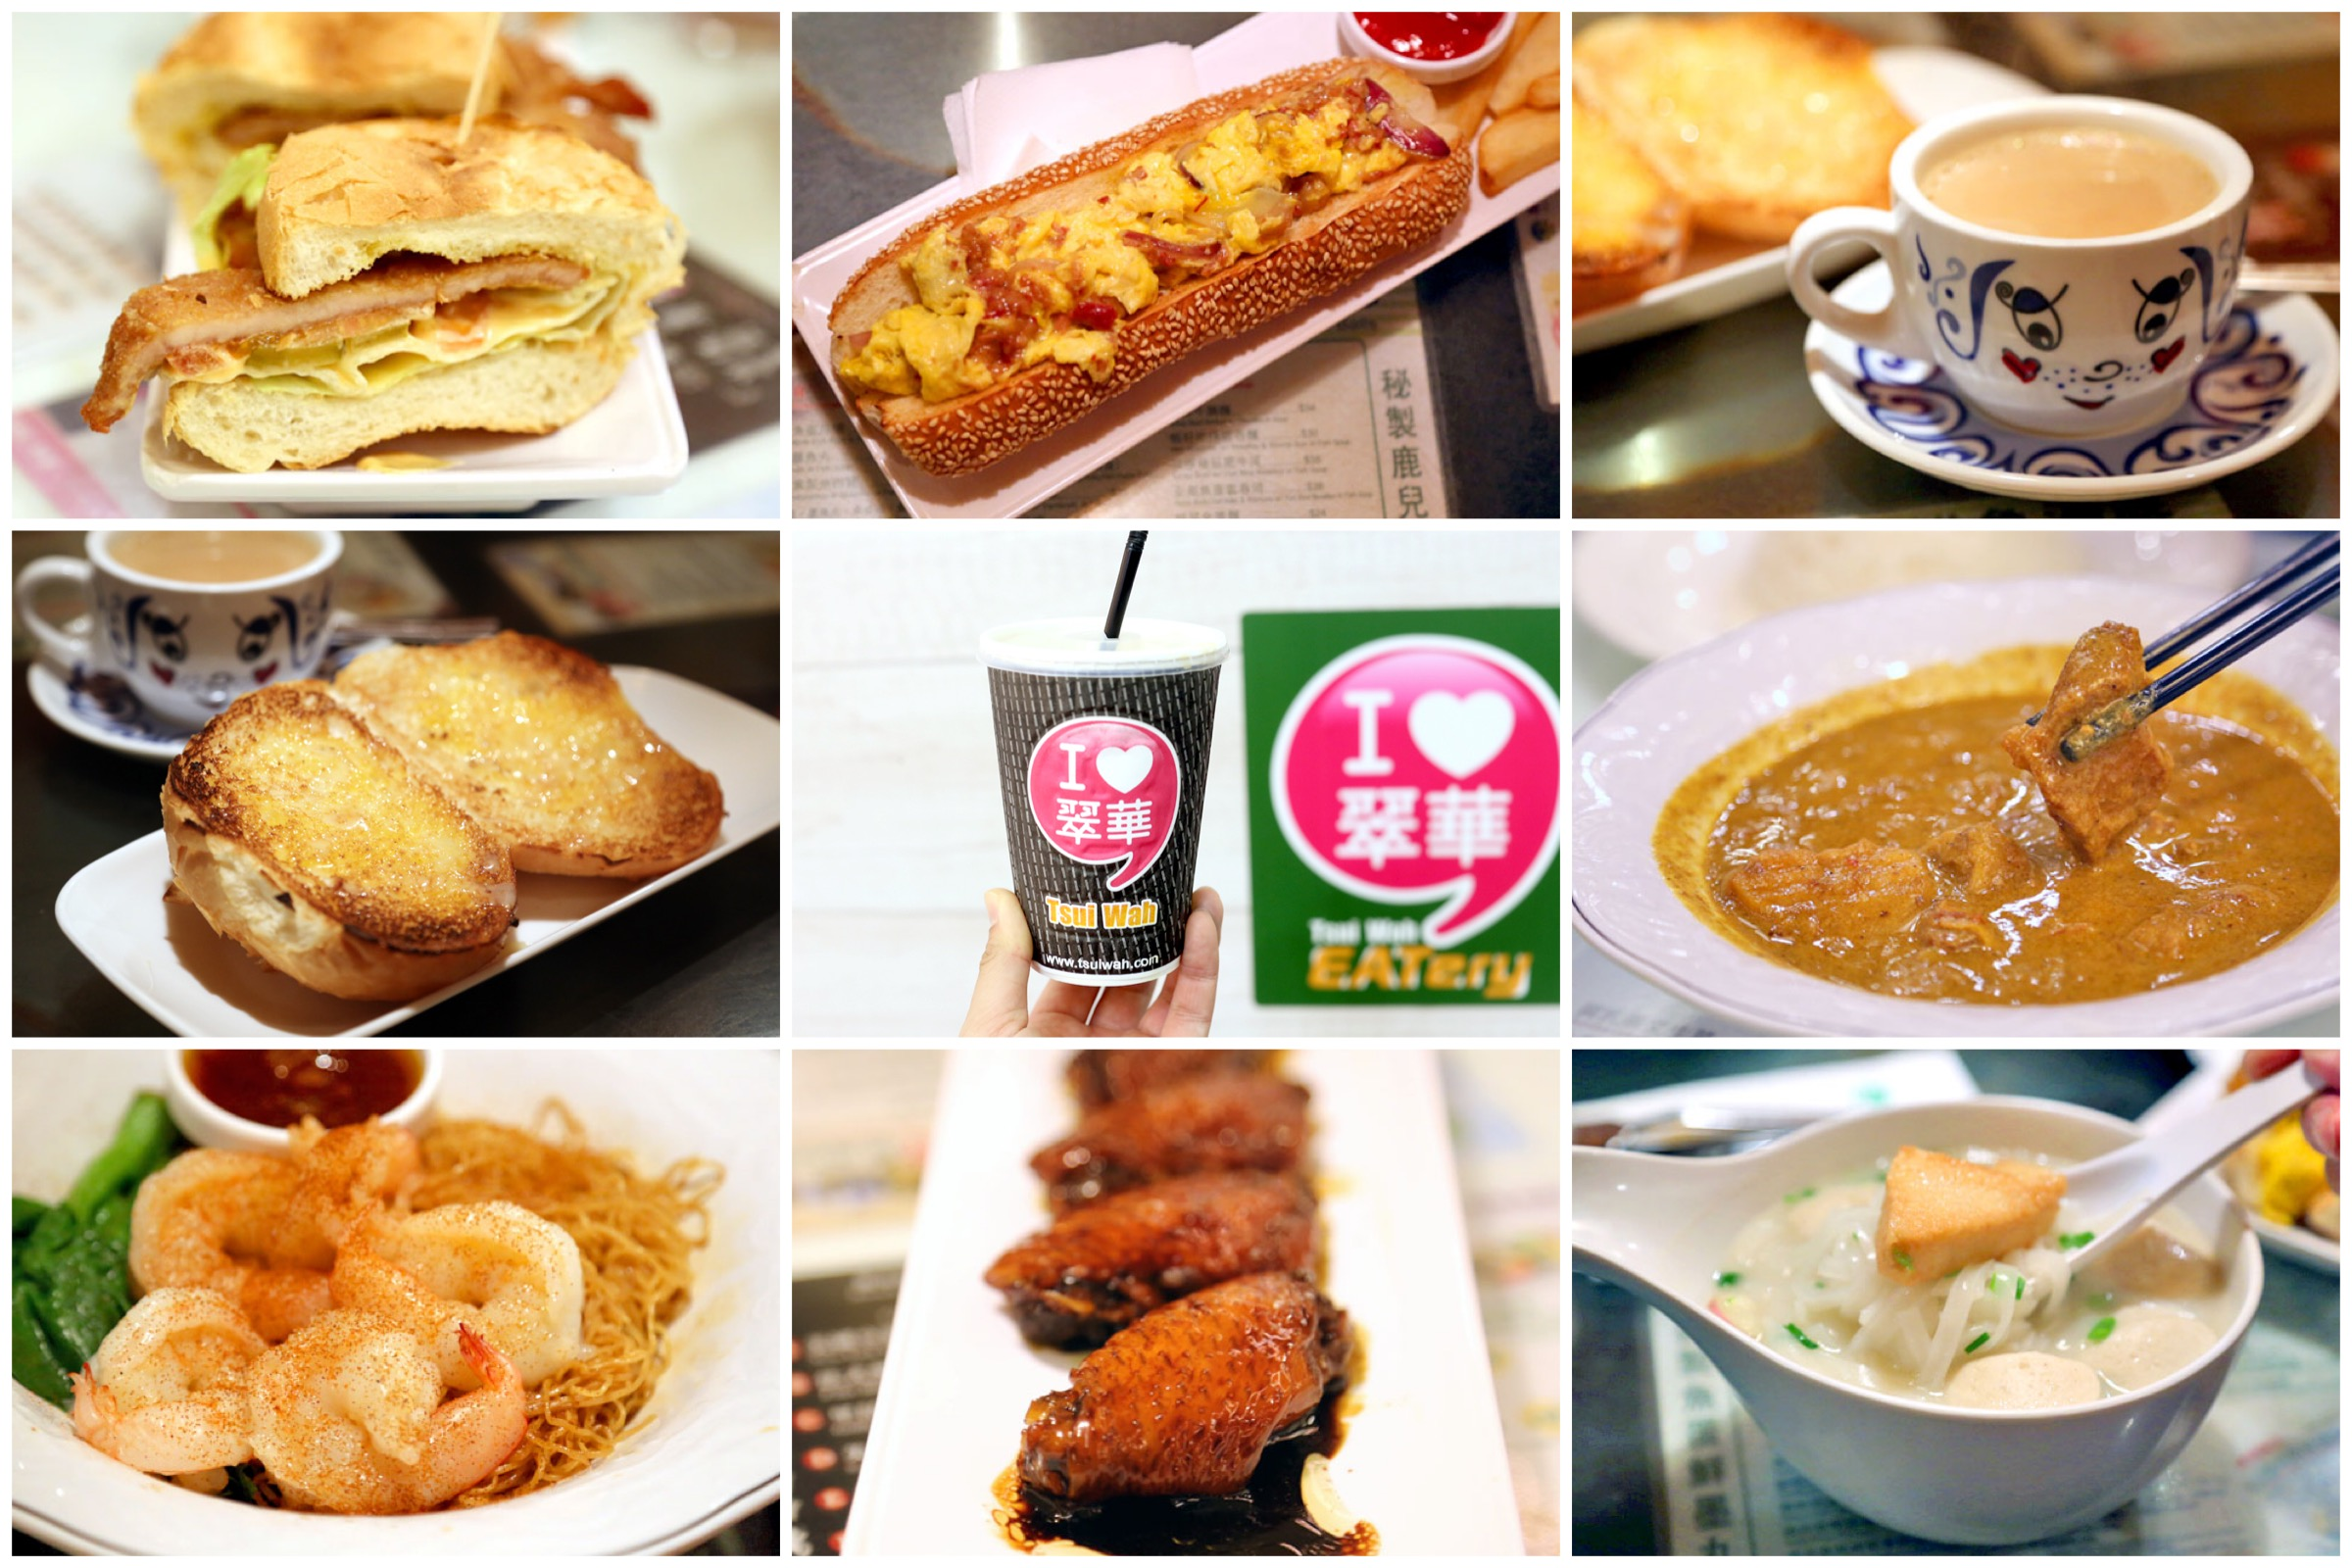 Tsui Wah Singapore 翠華餐廳 - Famous Hong Kong Cafe Opening At Clarke Quay